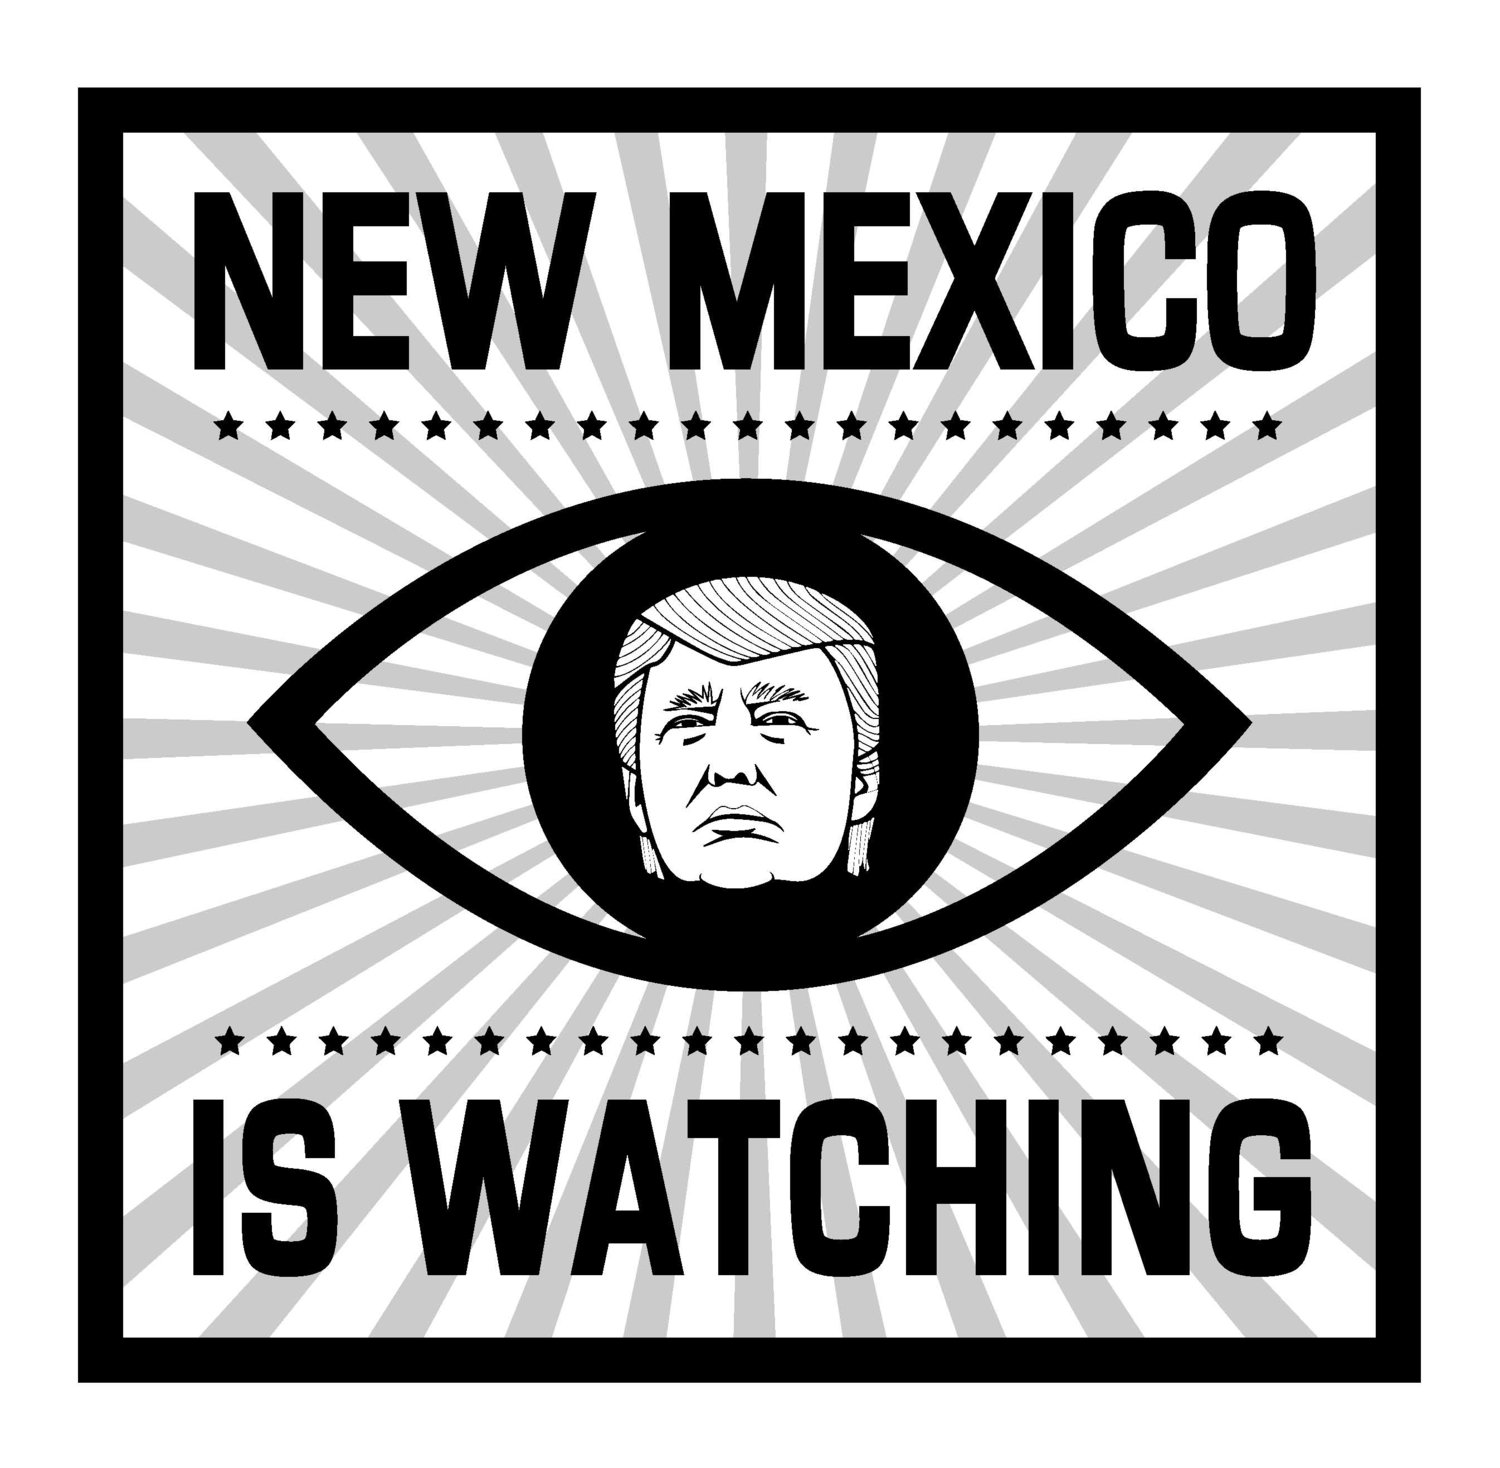 New Mexico Is Watching